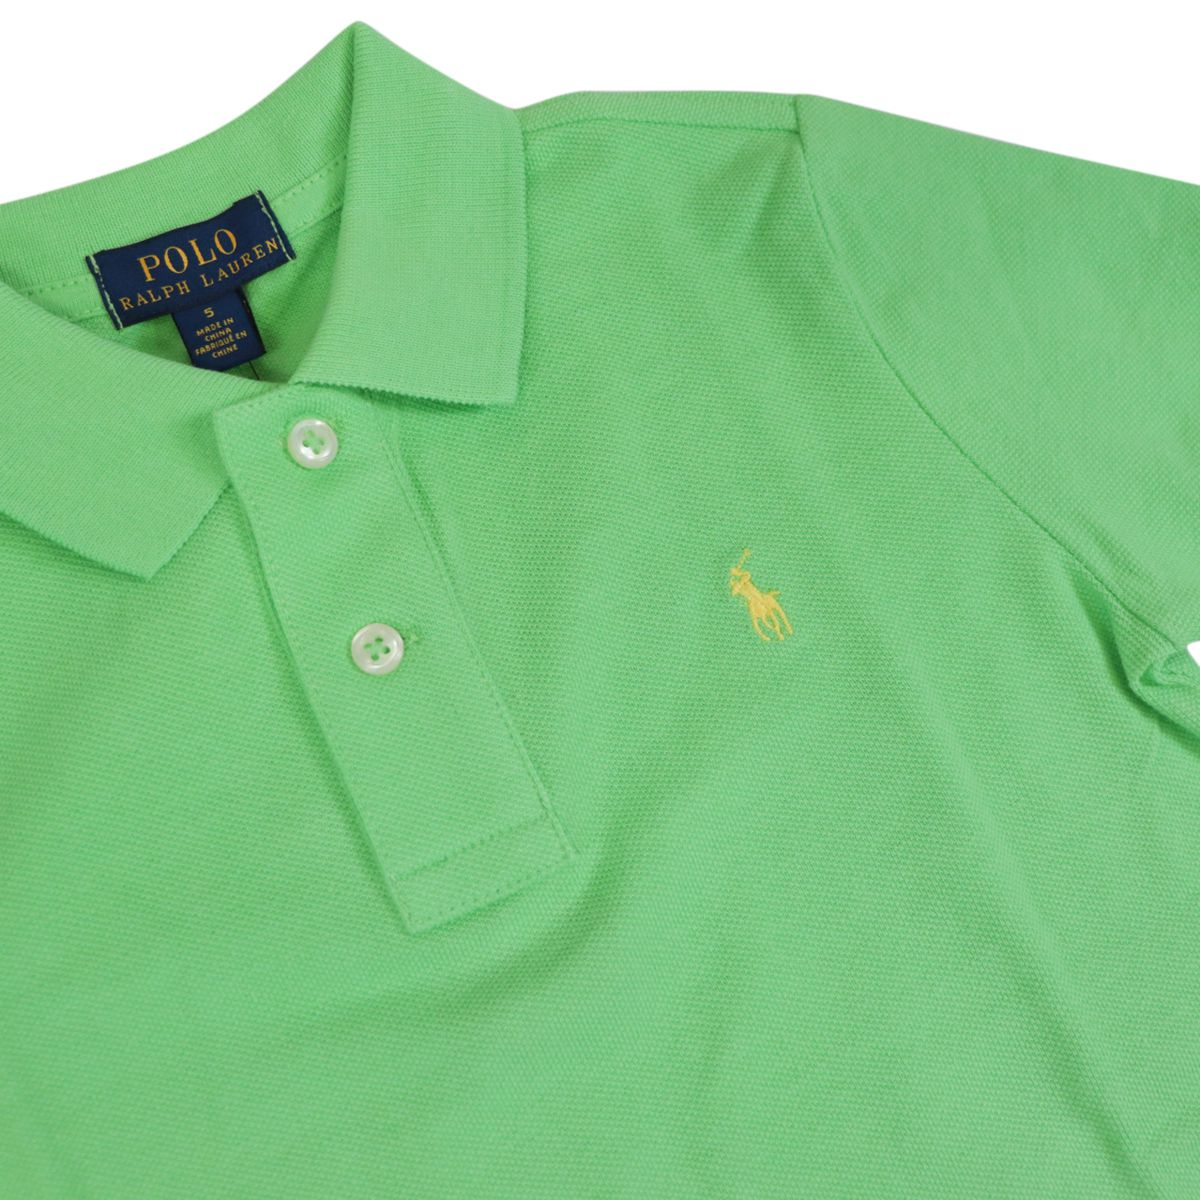 Two-button cotton polo shirt with contrasting embroidered logo New lime Polo Ralph Lauren